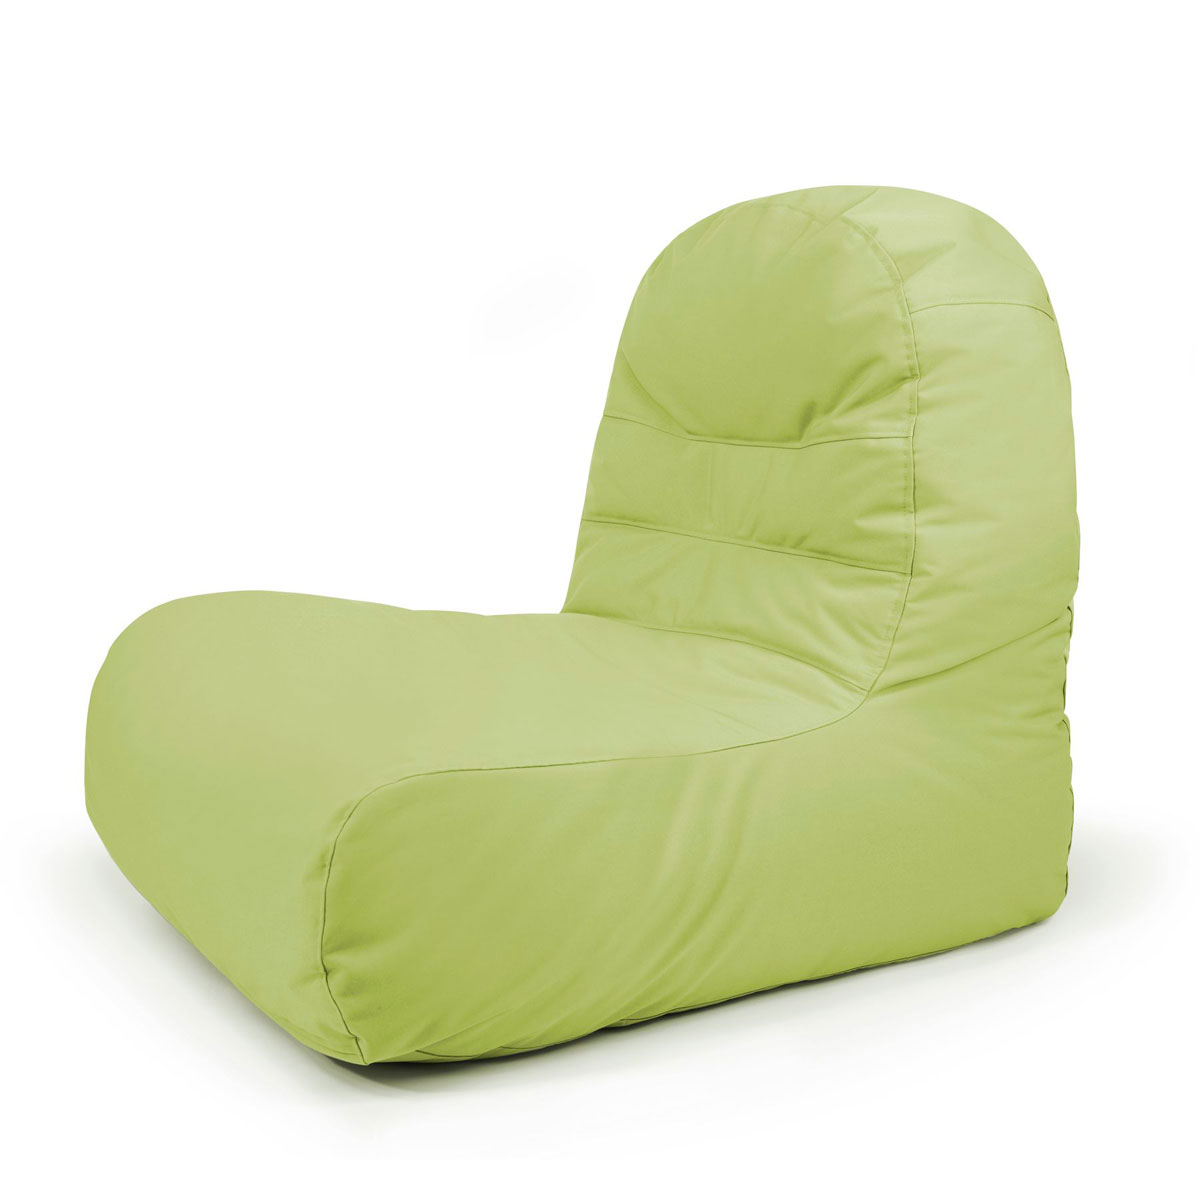 "Gartenstühle - Sitzsack ""Bridge Plus"", lime  - Onlineshop Hellweg"